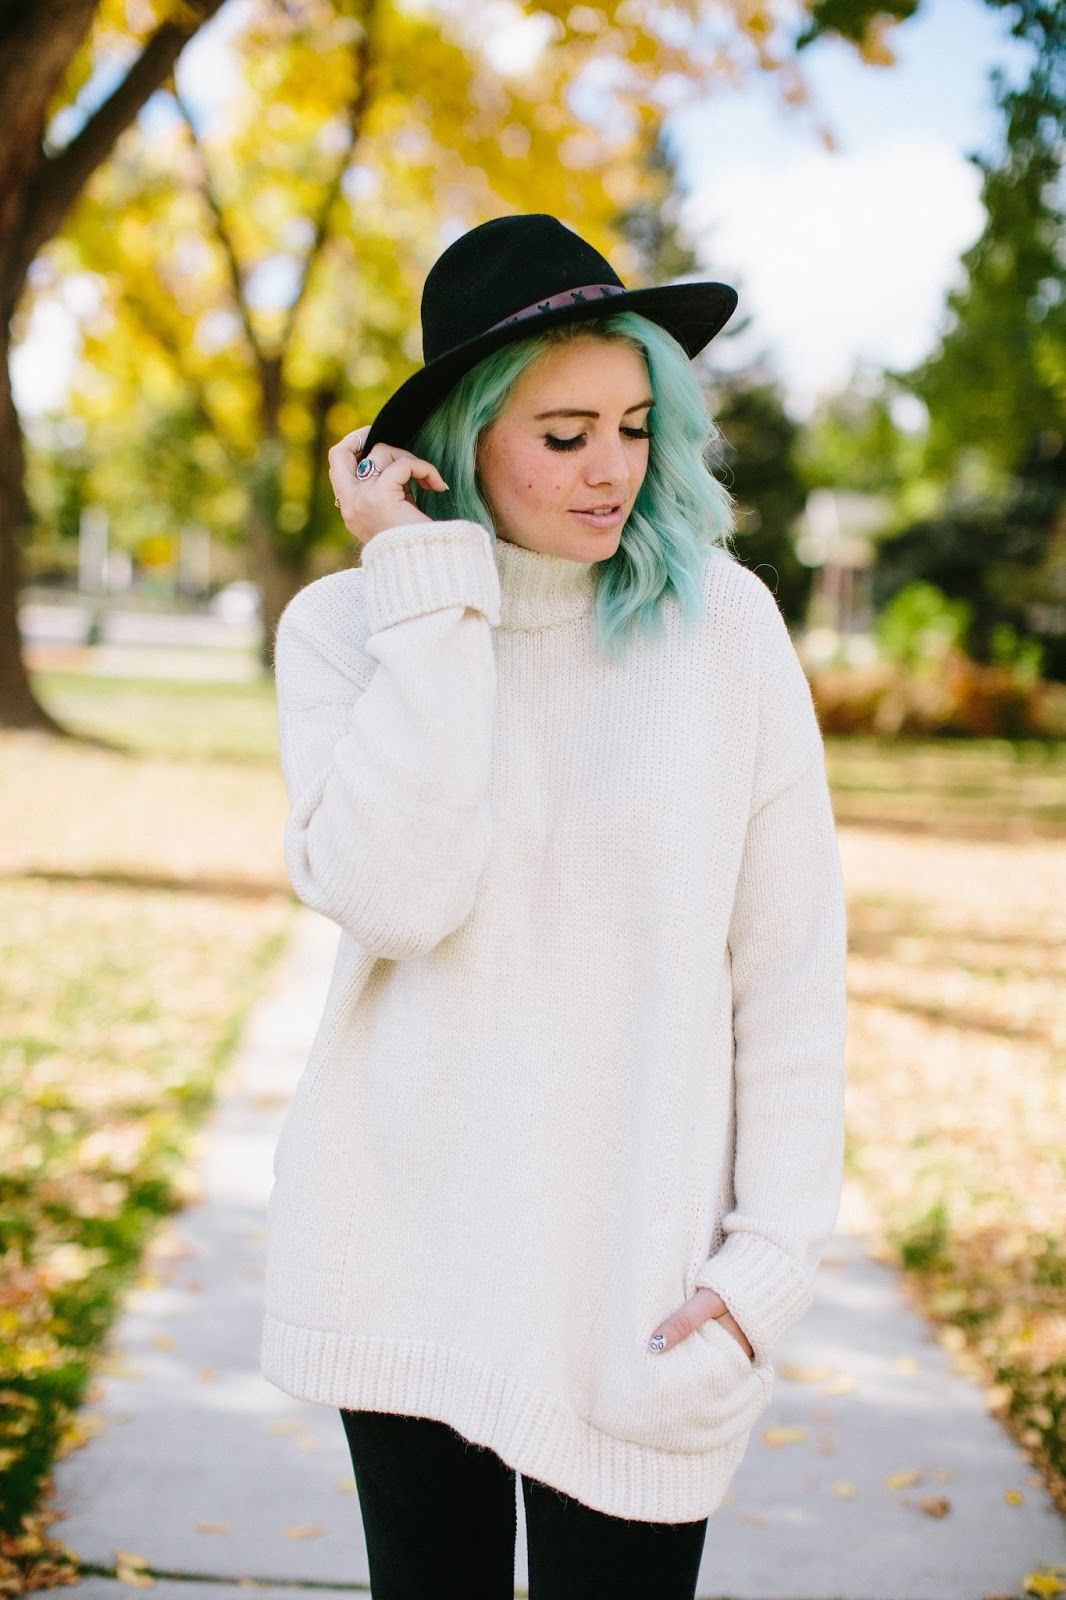 Blue Hair, Fall sweater, Fall look